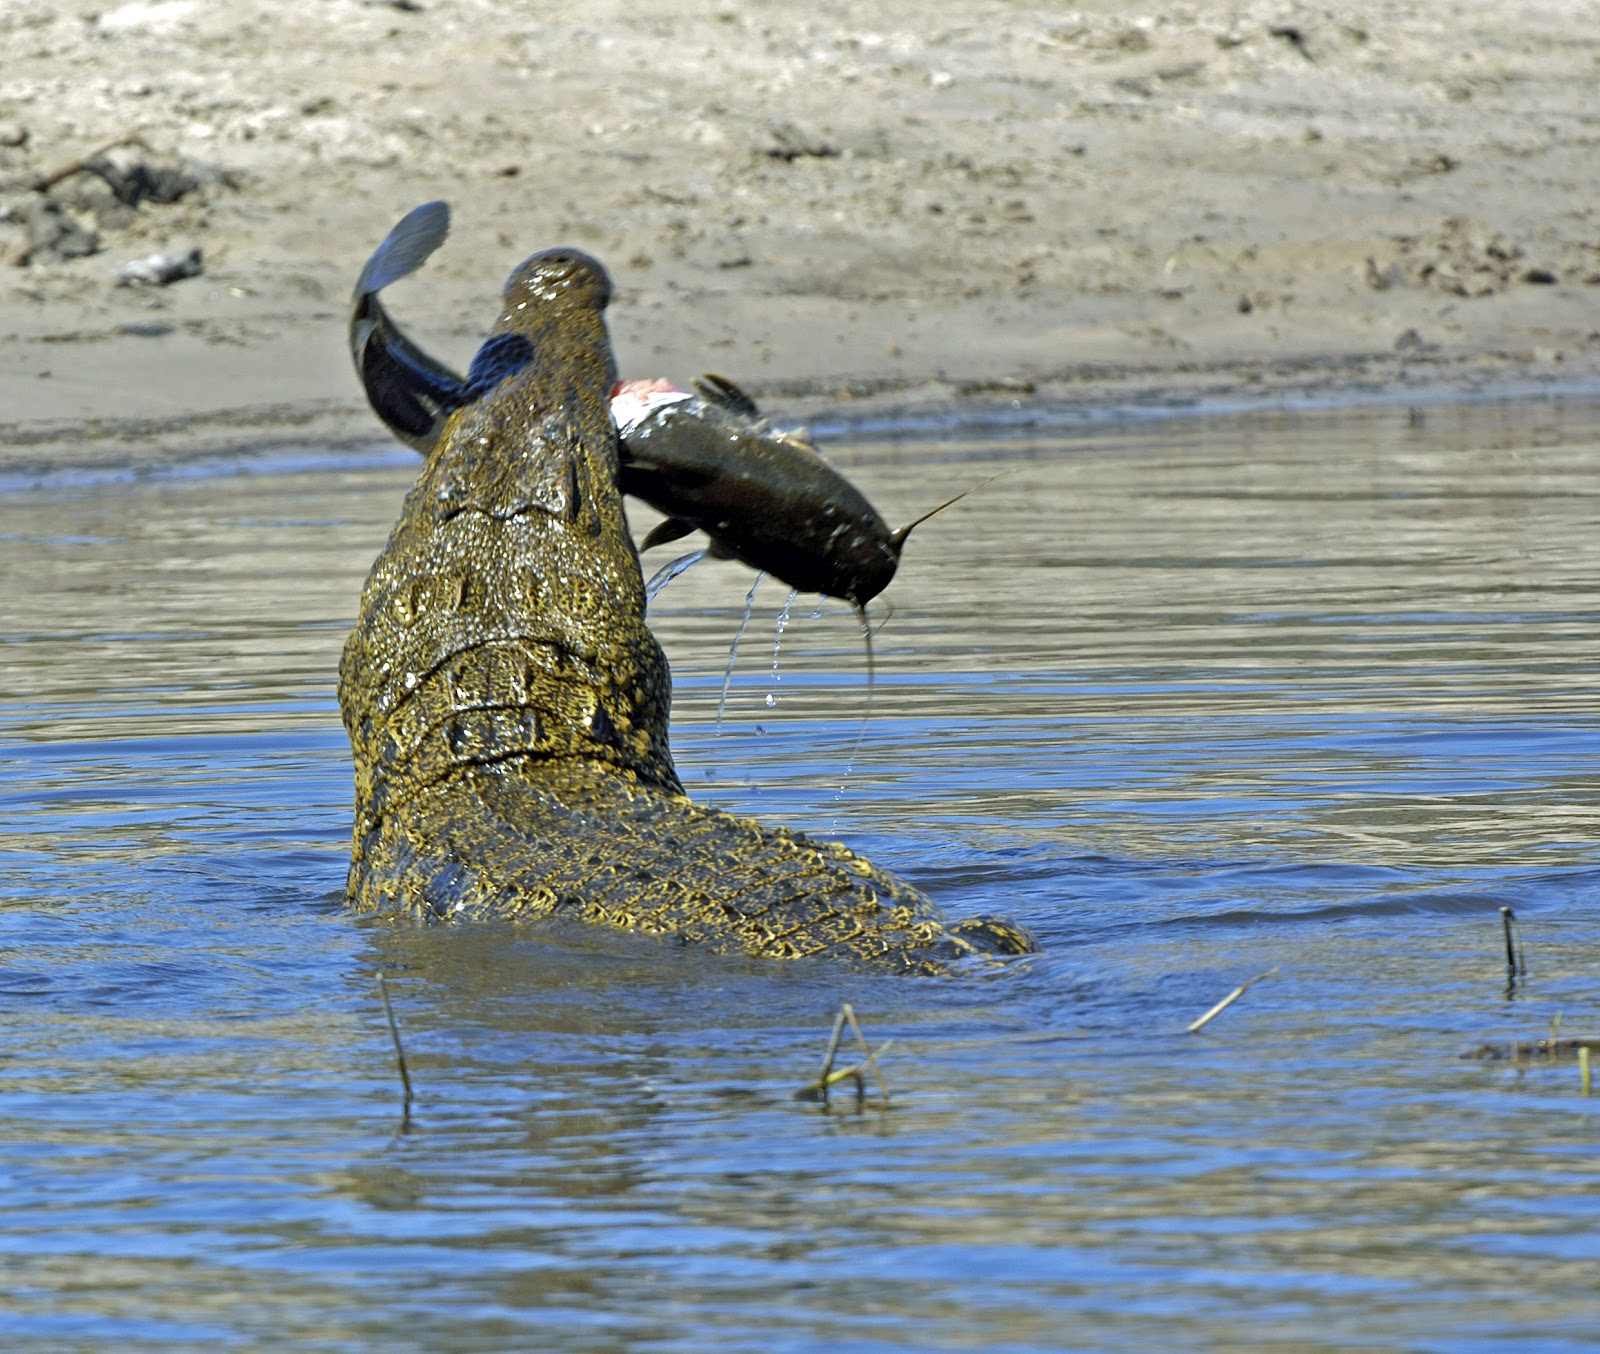 Beautiful Animals Safaris: The African Nile crocodile